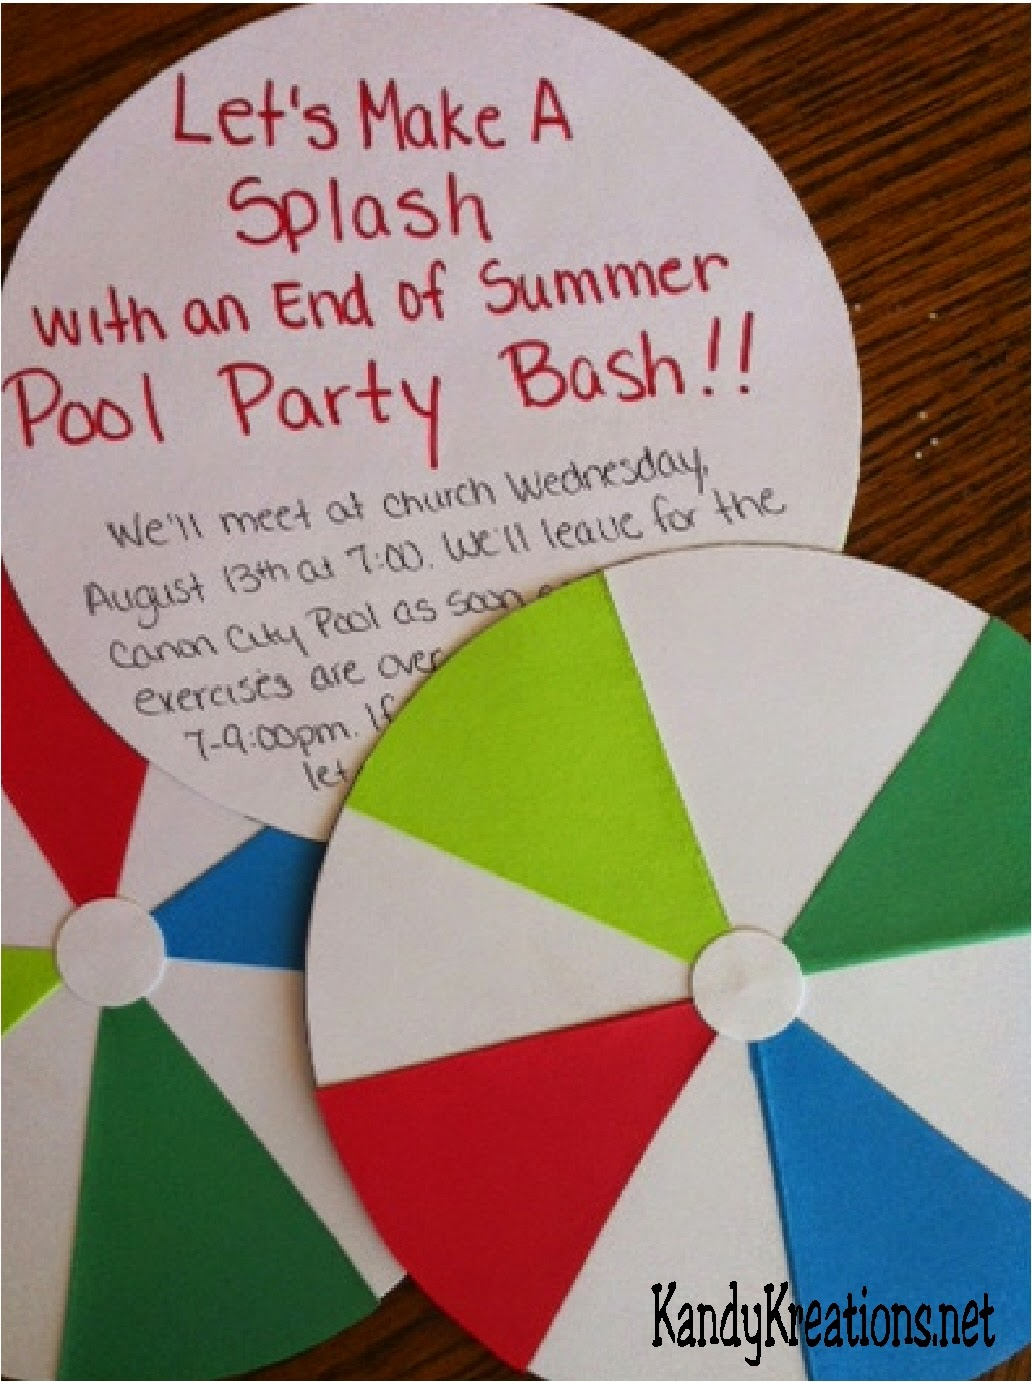 End-of-summer-Pool-Party-Invitation-by Kandy Kreations